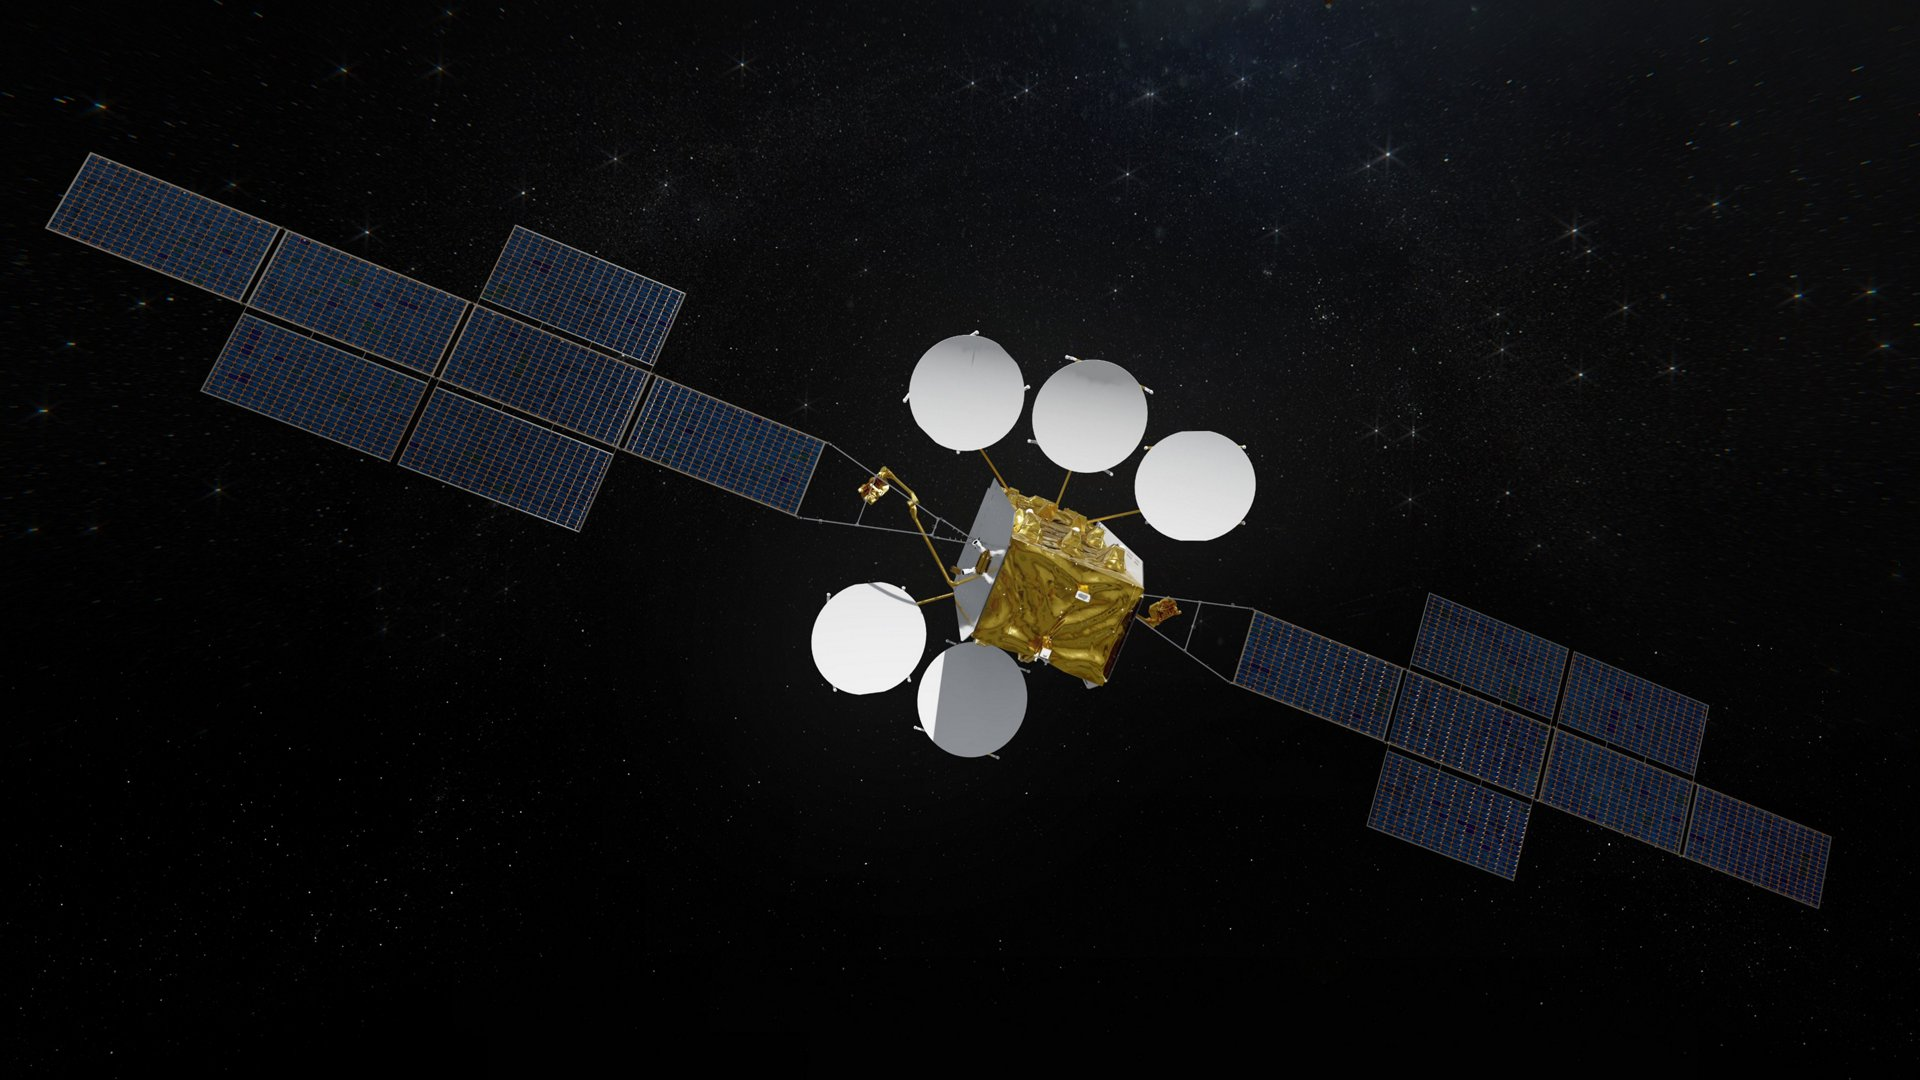 With the new Eurostar Neo platform, the payload capacity can be greatly increased, with the Communication Module able to accommodate up to 2 tons of payload and provide payload power of more than 25kW.  EUTELSAT HOTBIRD 13F and 13G will both have spacecraft power of 22 kW and a launch mass of only 4,500 kg.